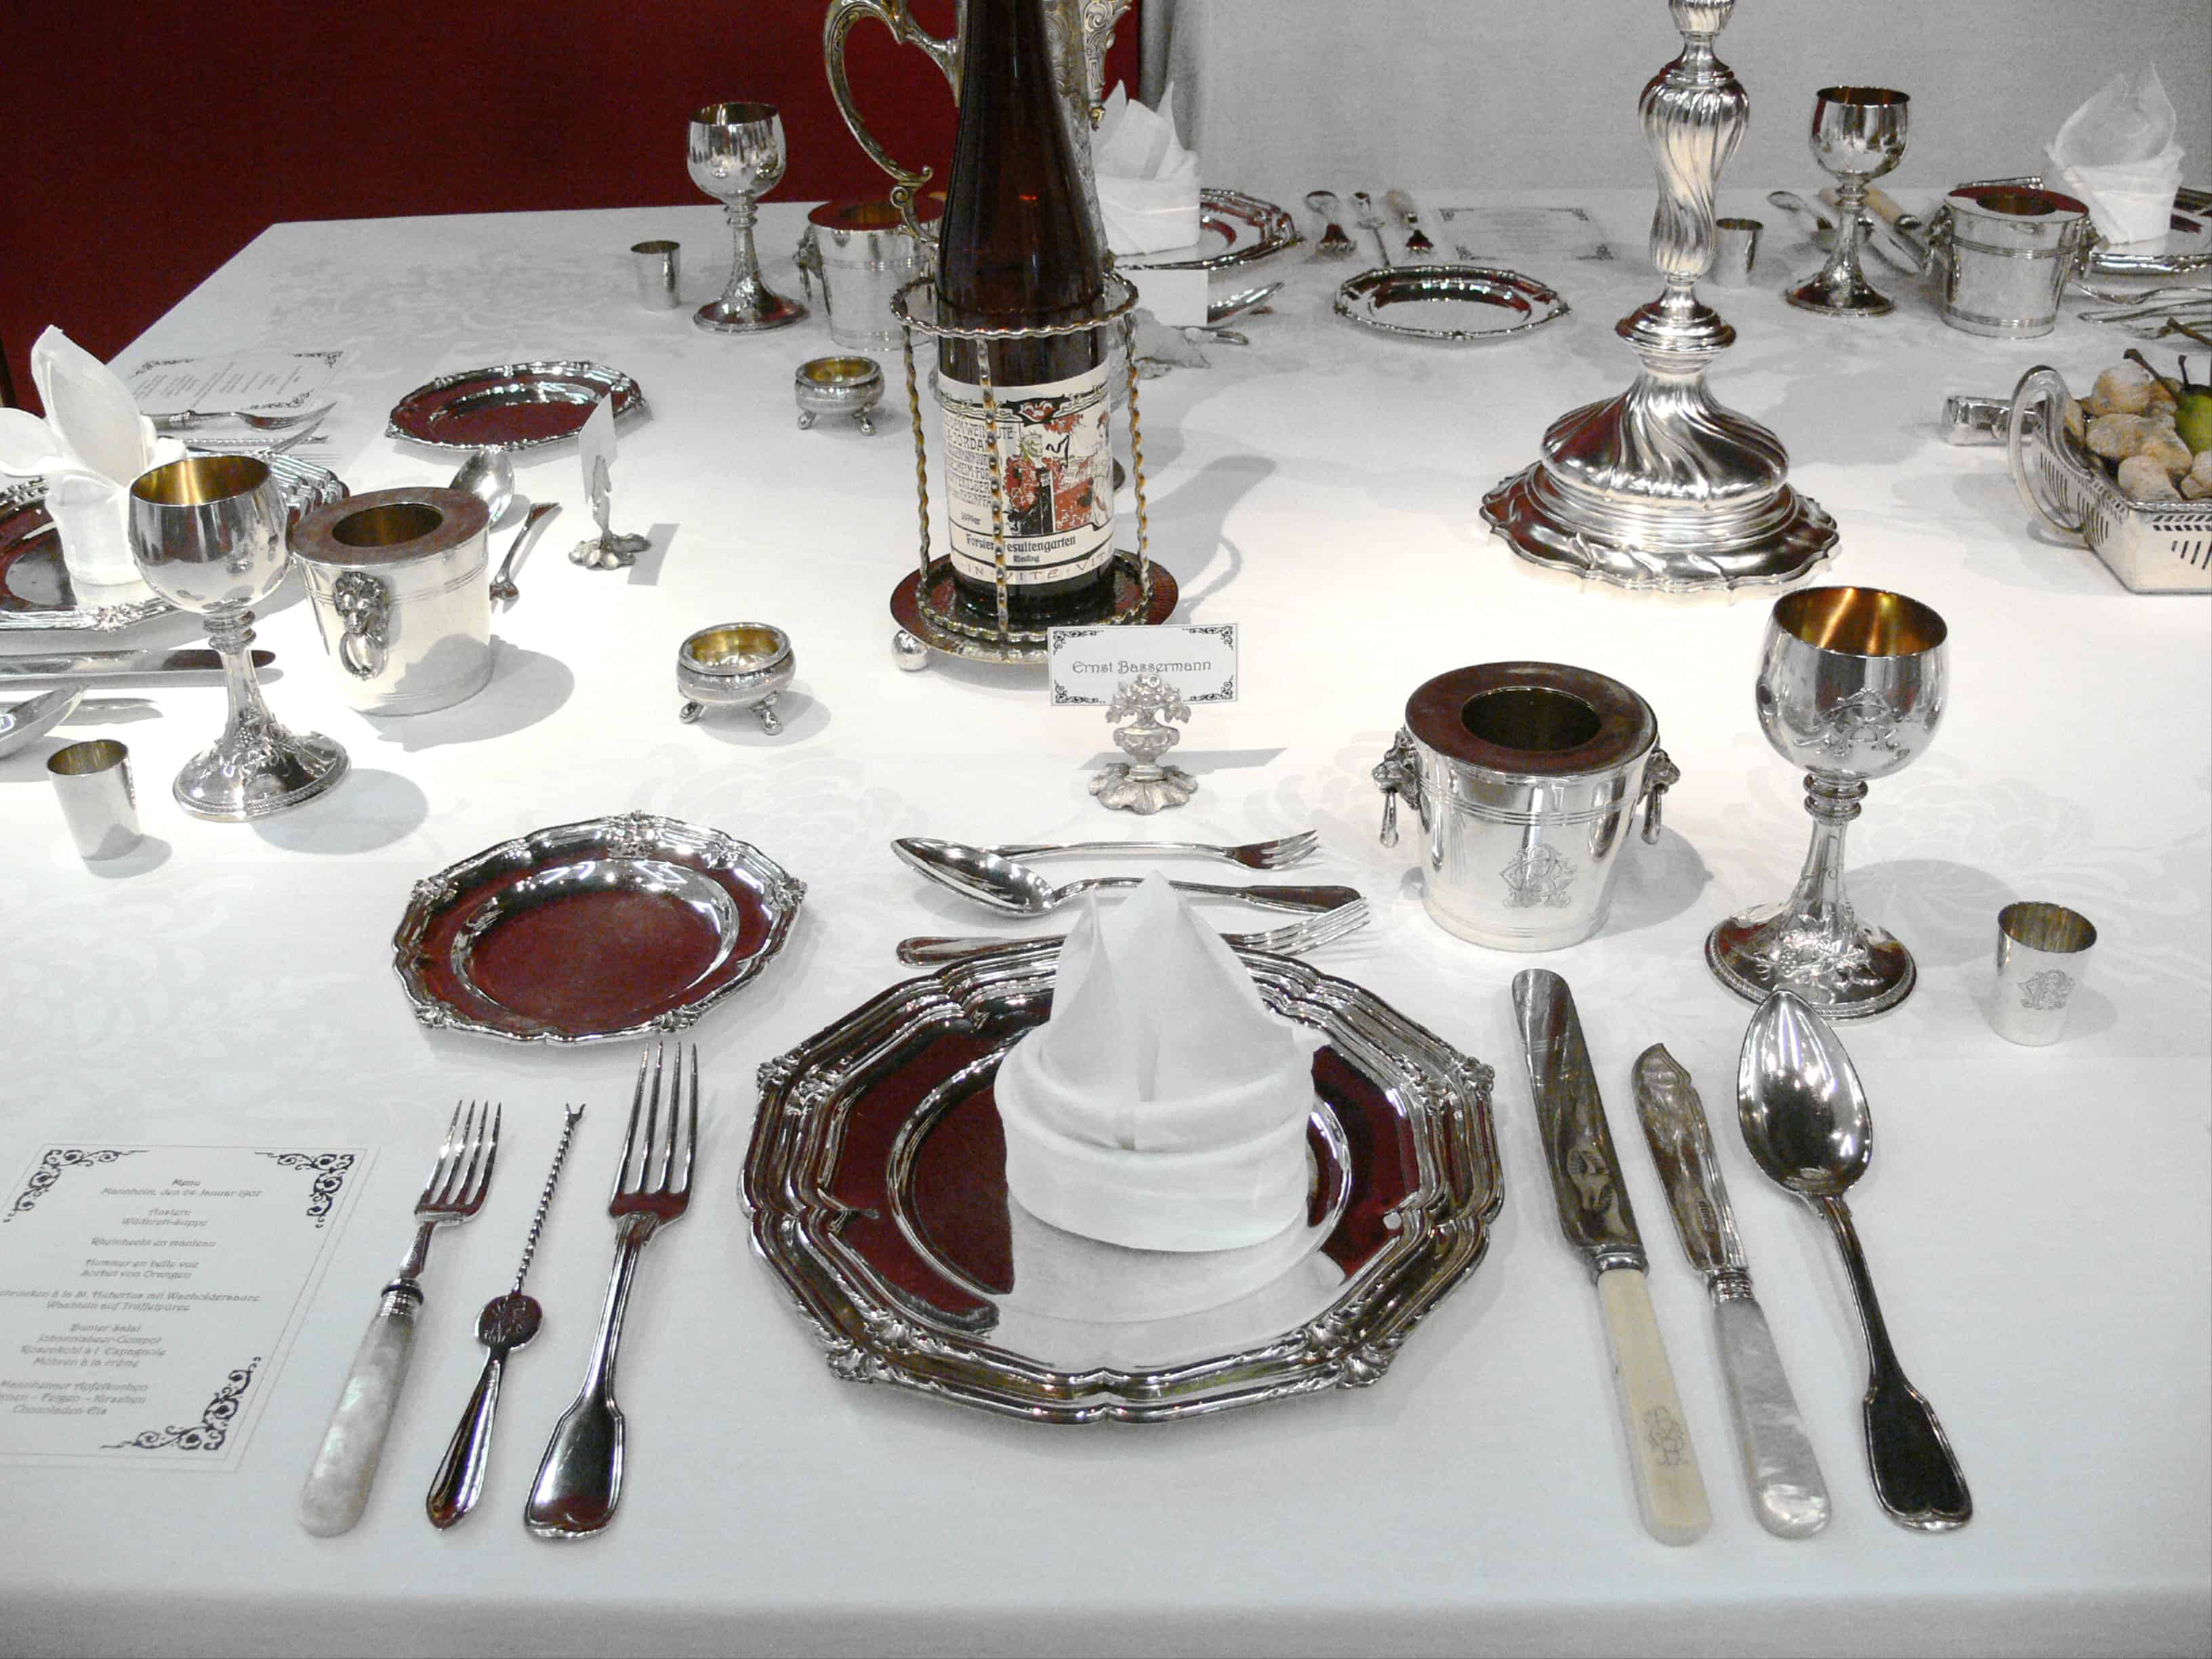 Rules of civility dinner etiquette formal dining